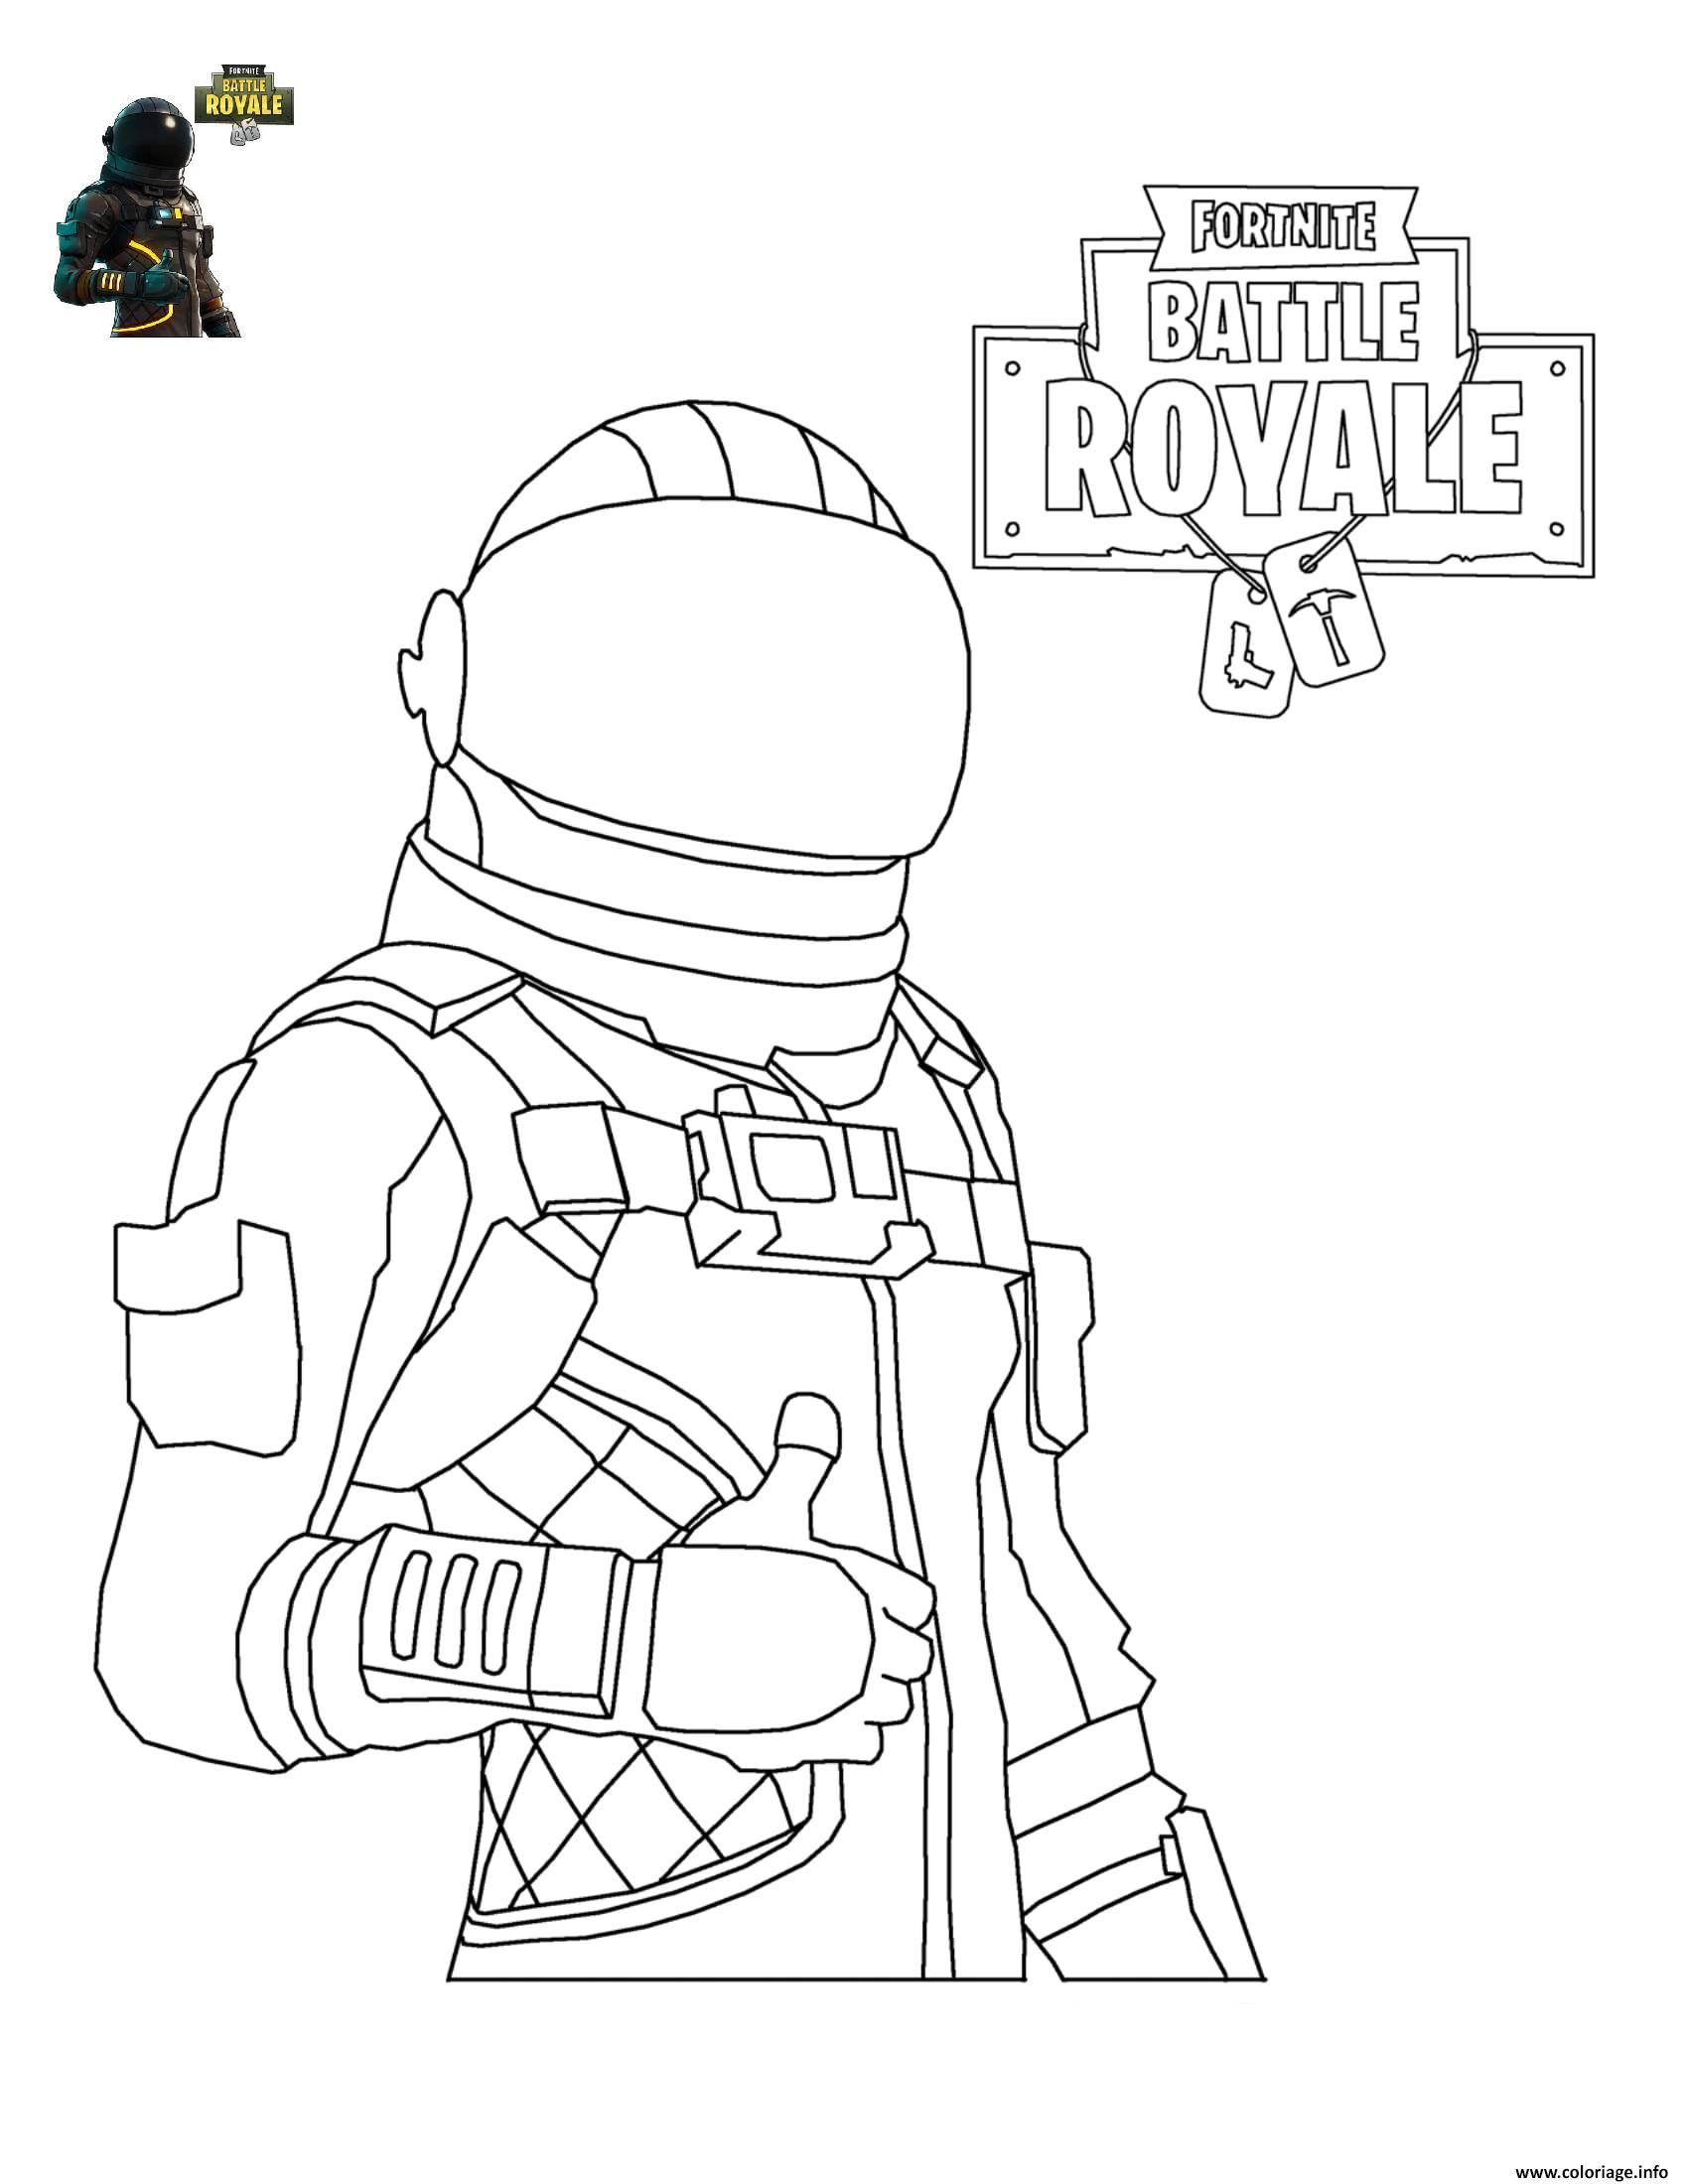 Coloriage Fortnite Battle Royale personnage 4 à imprimer | Coloriage ...